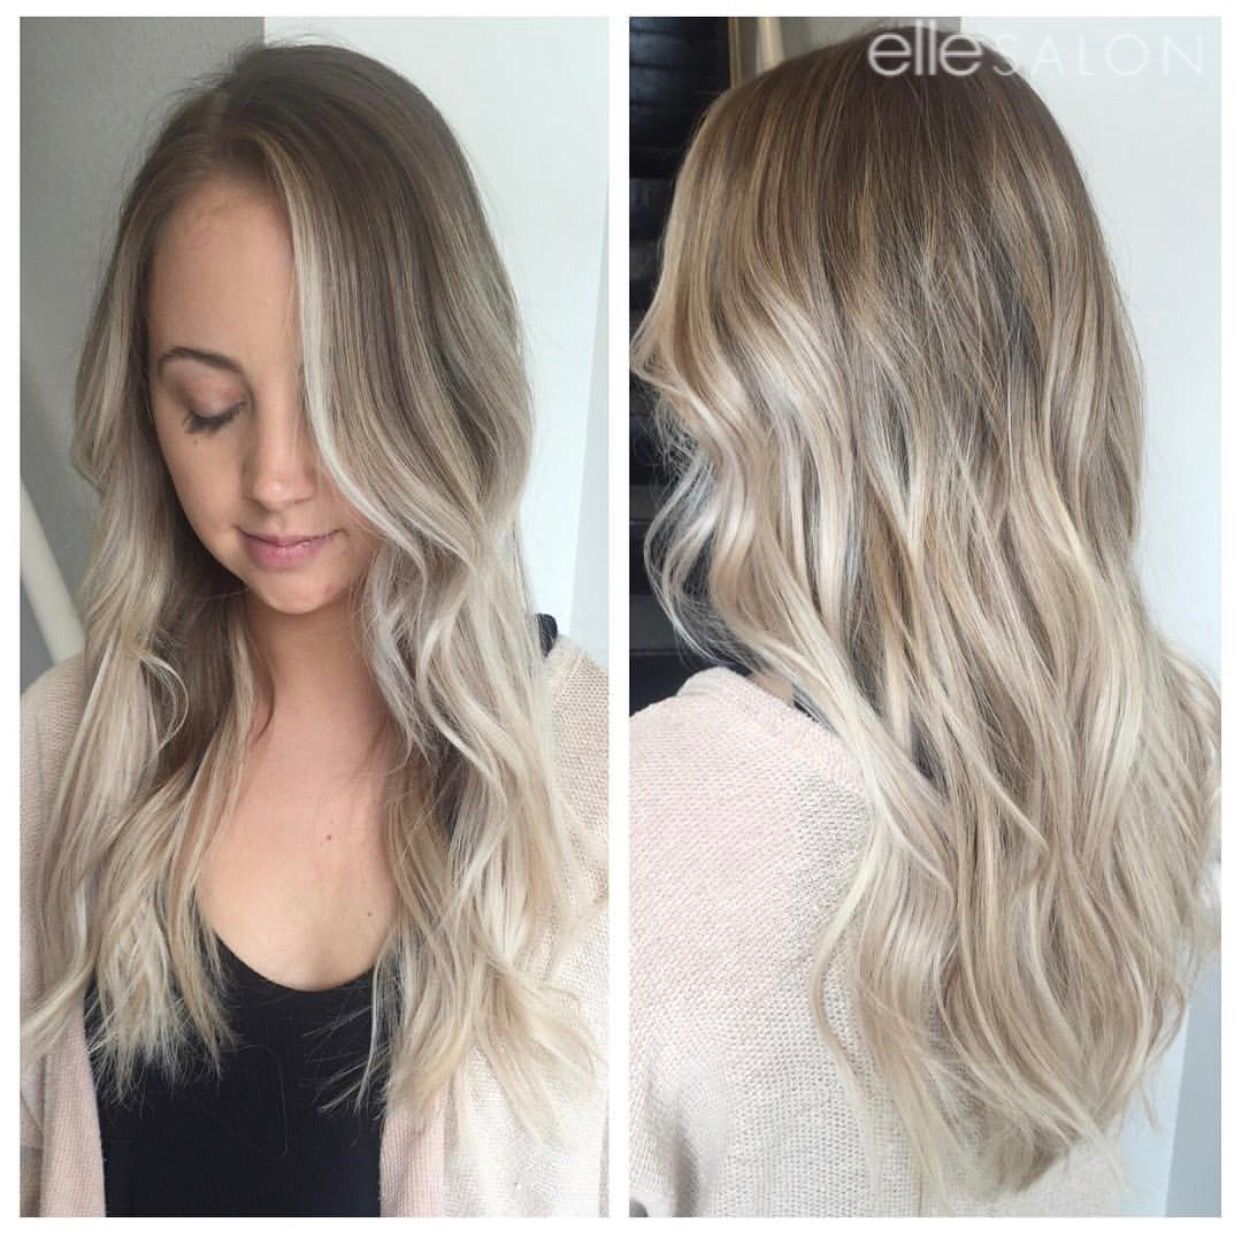 Blonde and beautiful! Hair by @hairby_ashleya ⠀